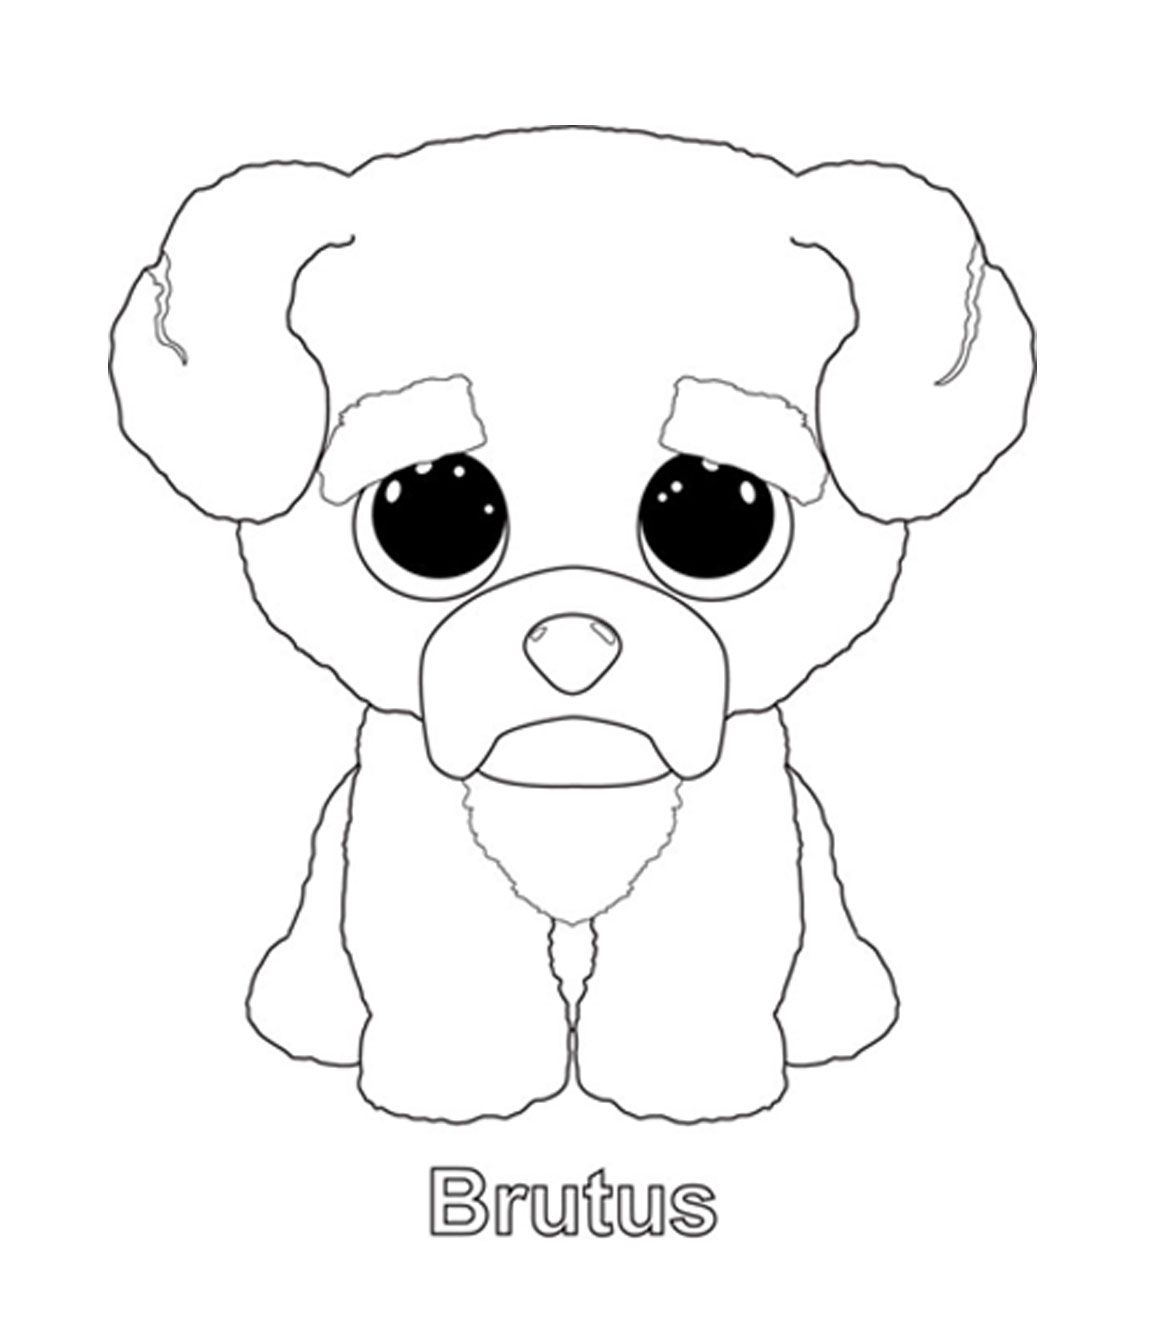 Brutus coloring page | DIY Arts and Crafts | Pinterest | Haustiere ...